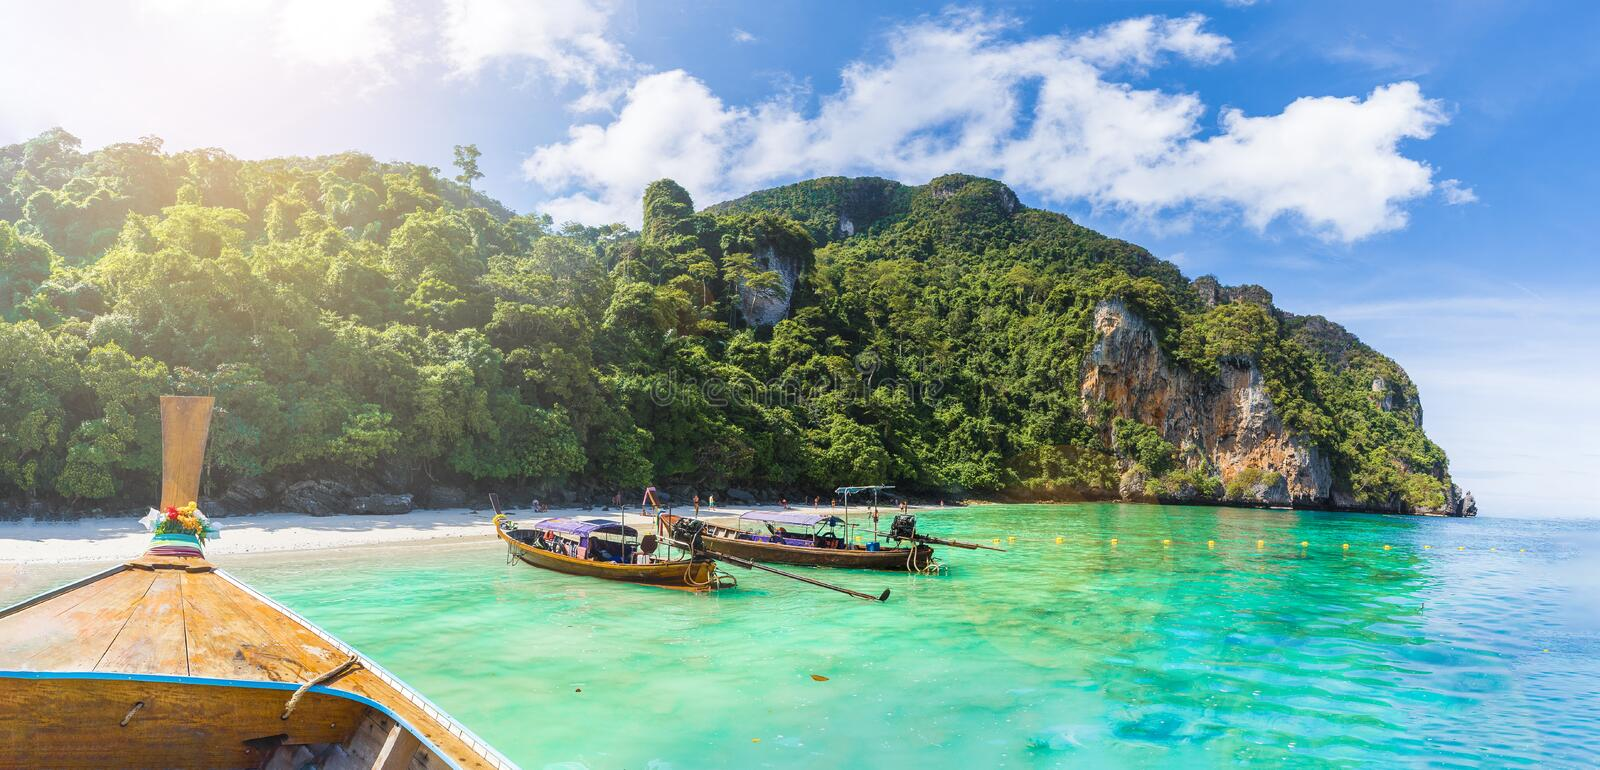 Traditionele lange staartboot op Aapstrand, Phi Phi Islands, Thailand stock foto's